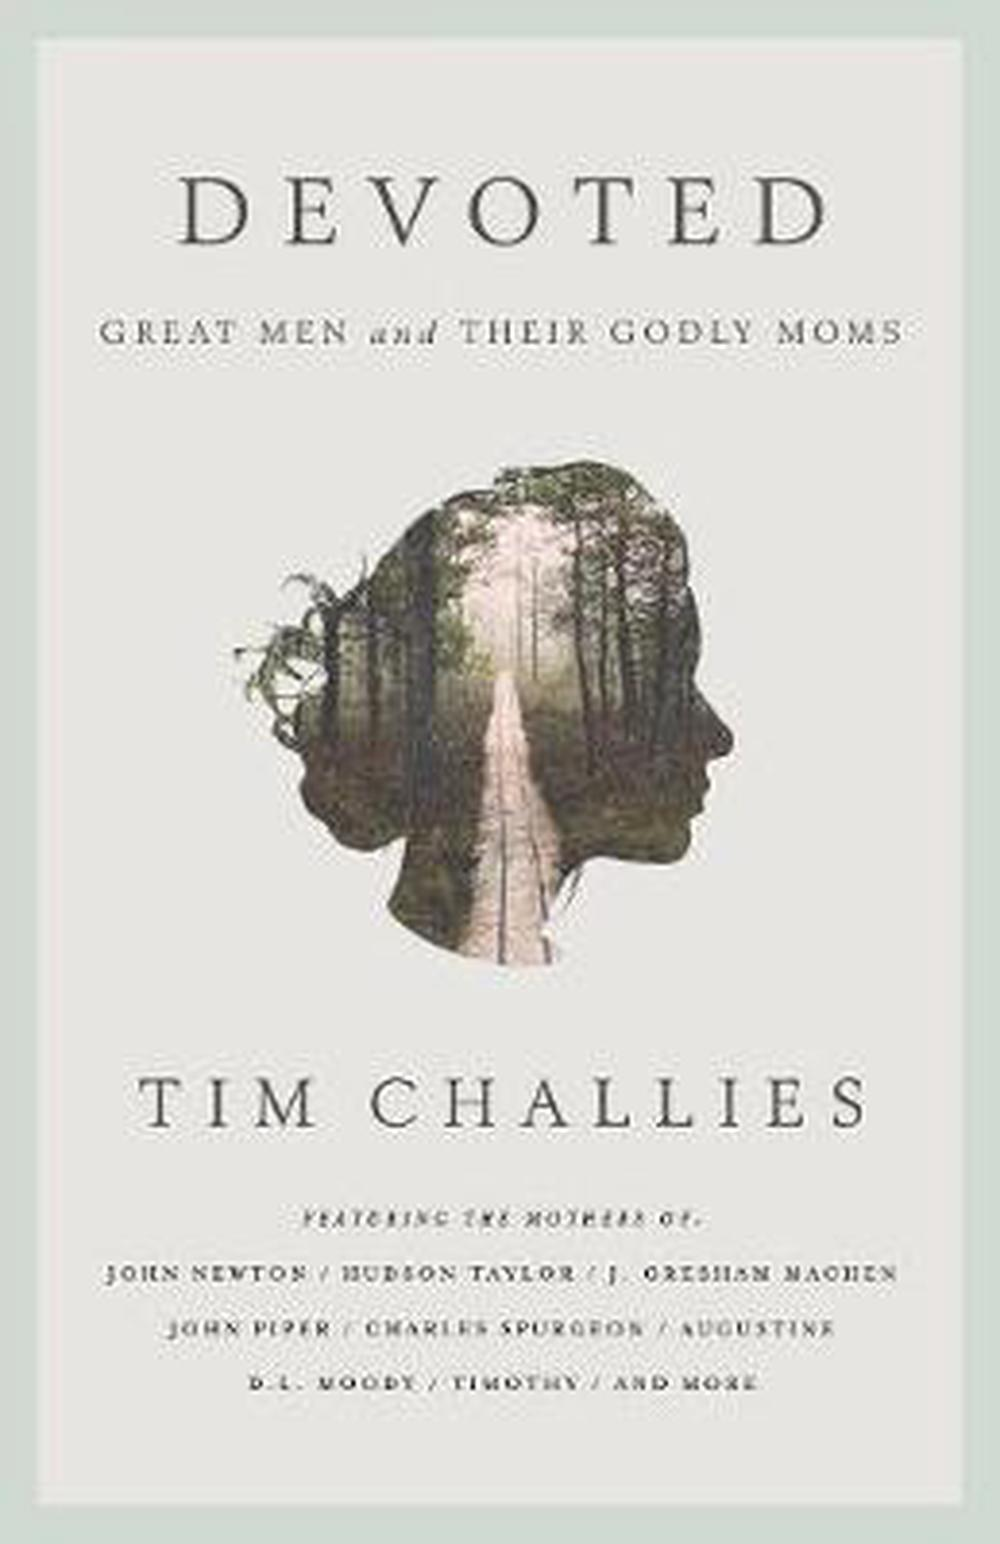 DevotedGreat Men and Their Godly Moms